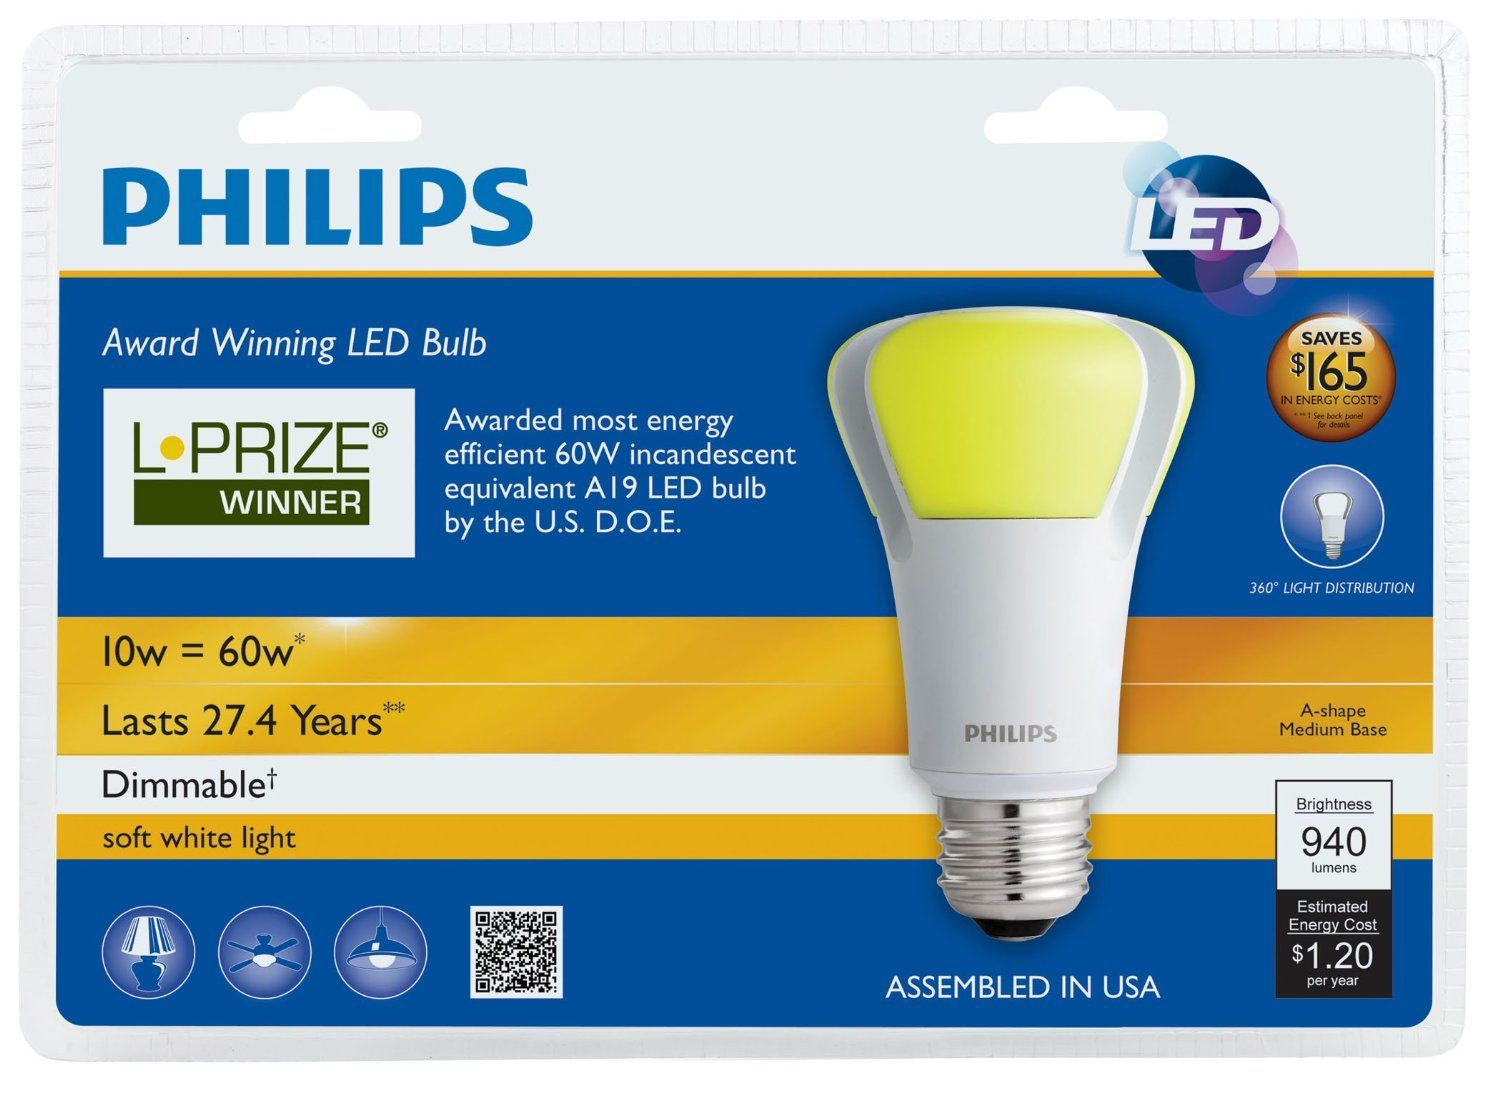 Philips 423244 10 Watt 60 Watt L Prize Award Winning Led Light Bulb Review Myfurniturebox Led Light Bulb Bulb Philips